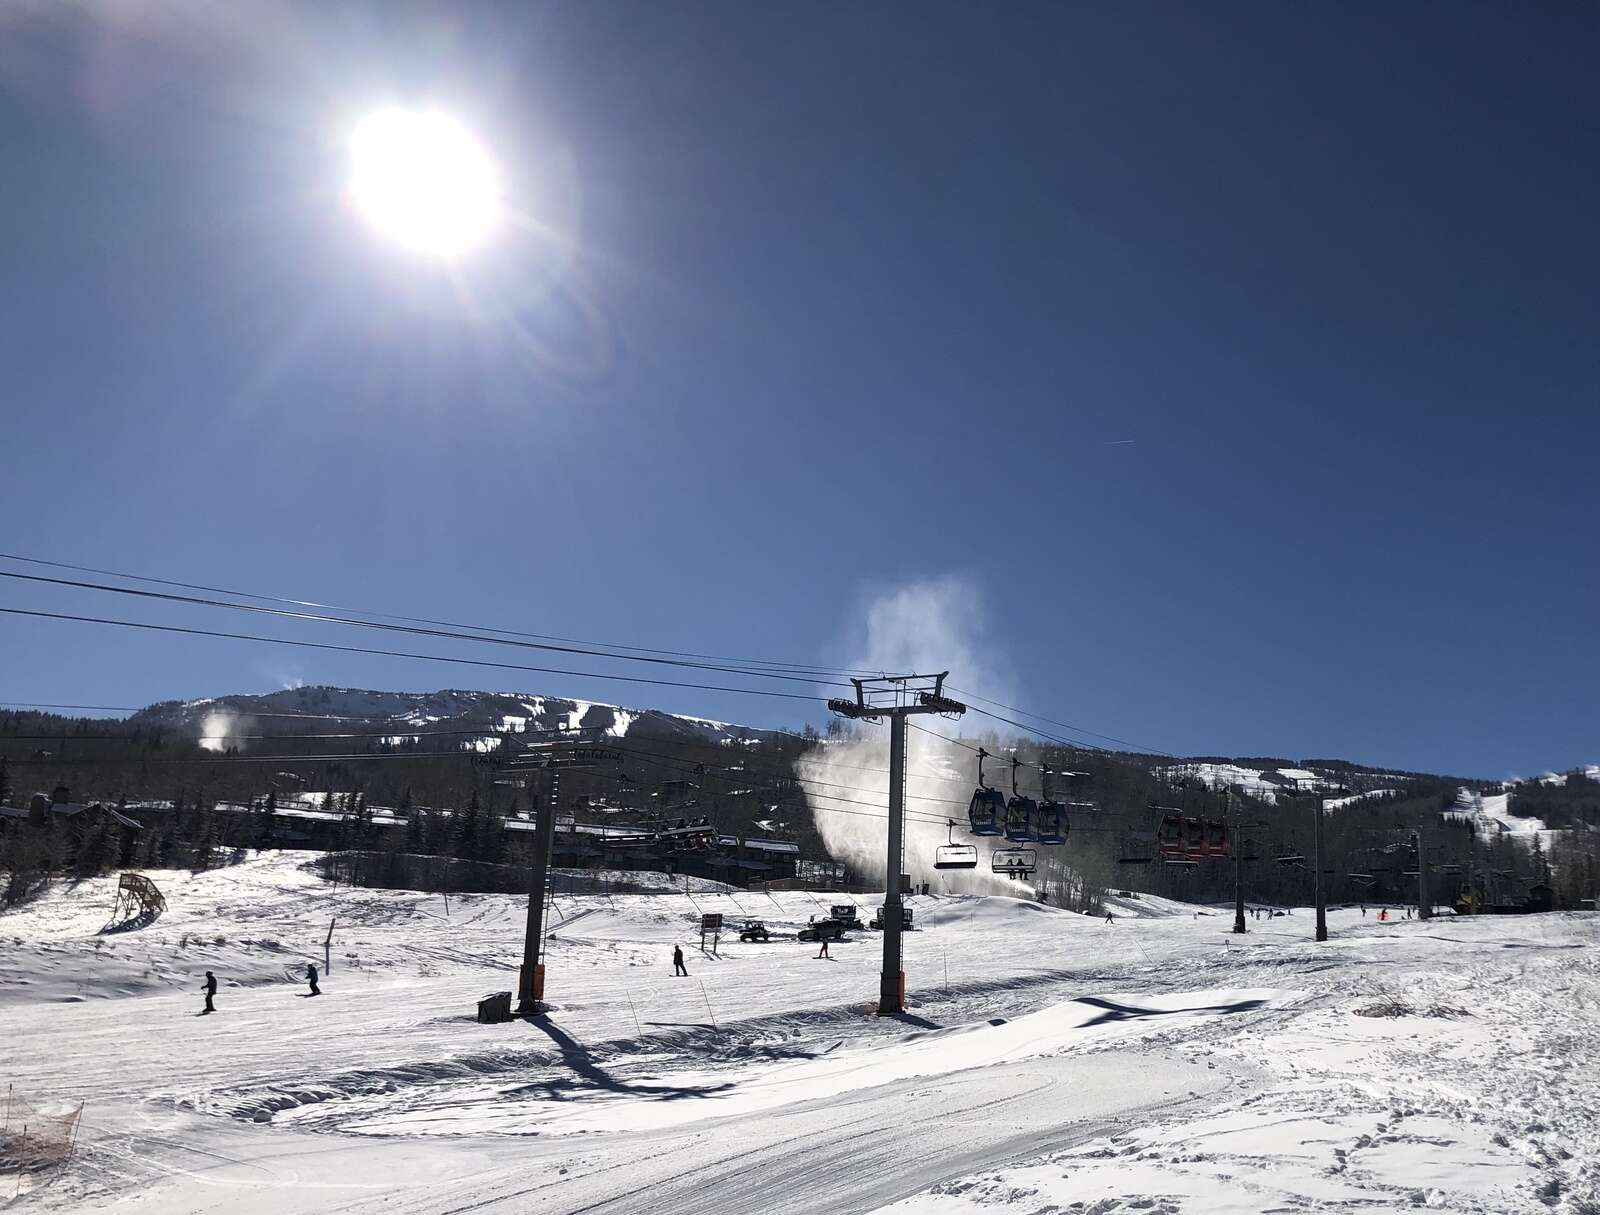 The sun shines on a bluebird day for the season opener at Snowmass on Nov. 25, 2020.